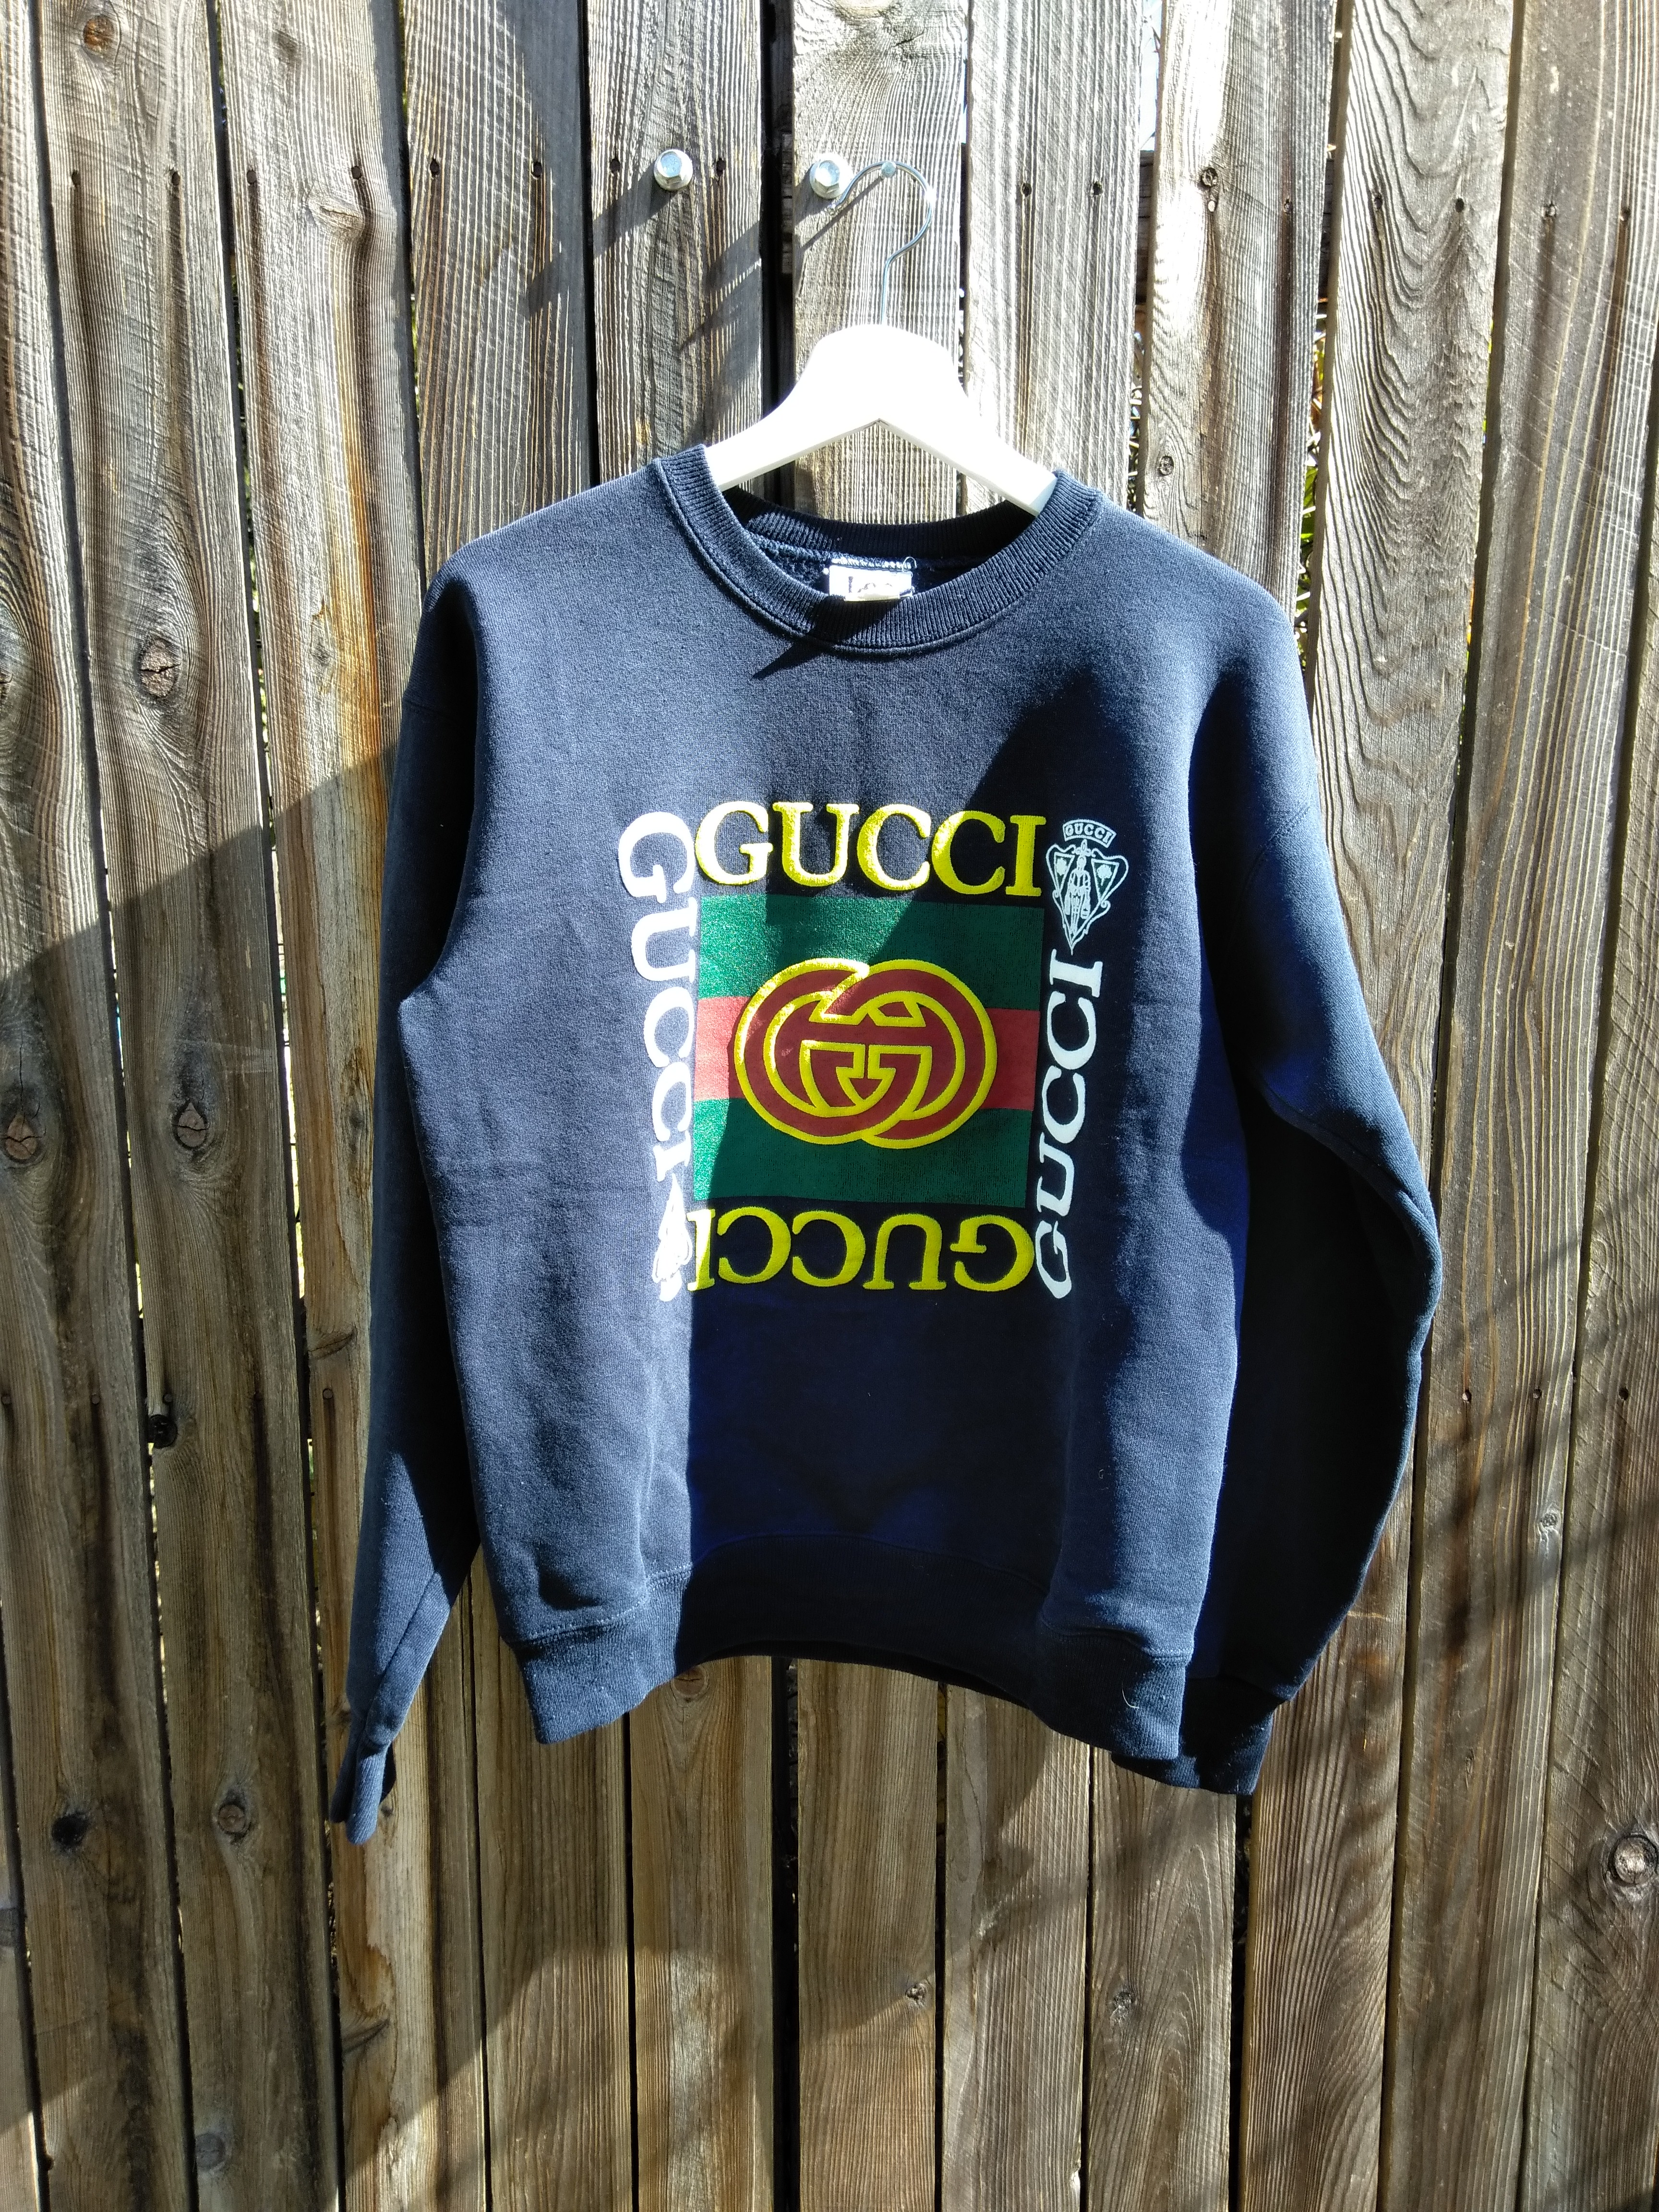 423de811915 Vintage Vintage Gucci Crewneck Dapper Dan 80 s 90 s Hip hop fashion Rare Size  m - Sweatshirts   Hoodies for Sale - Grailed